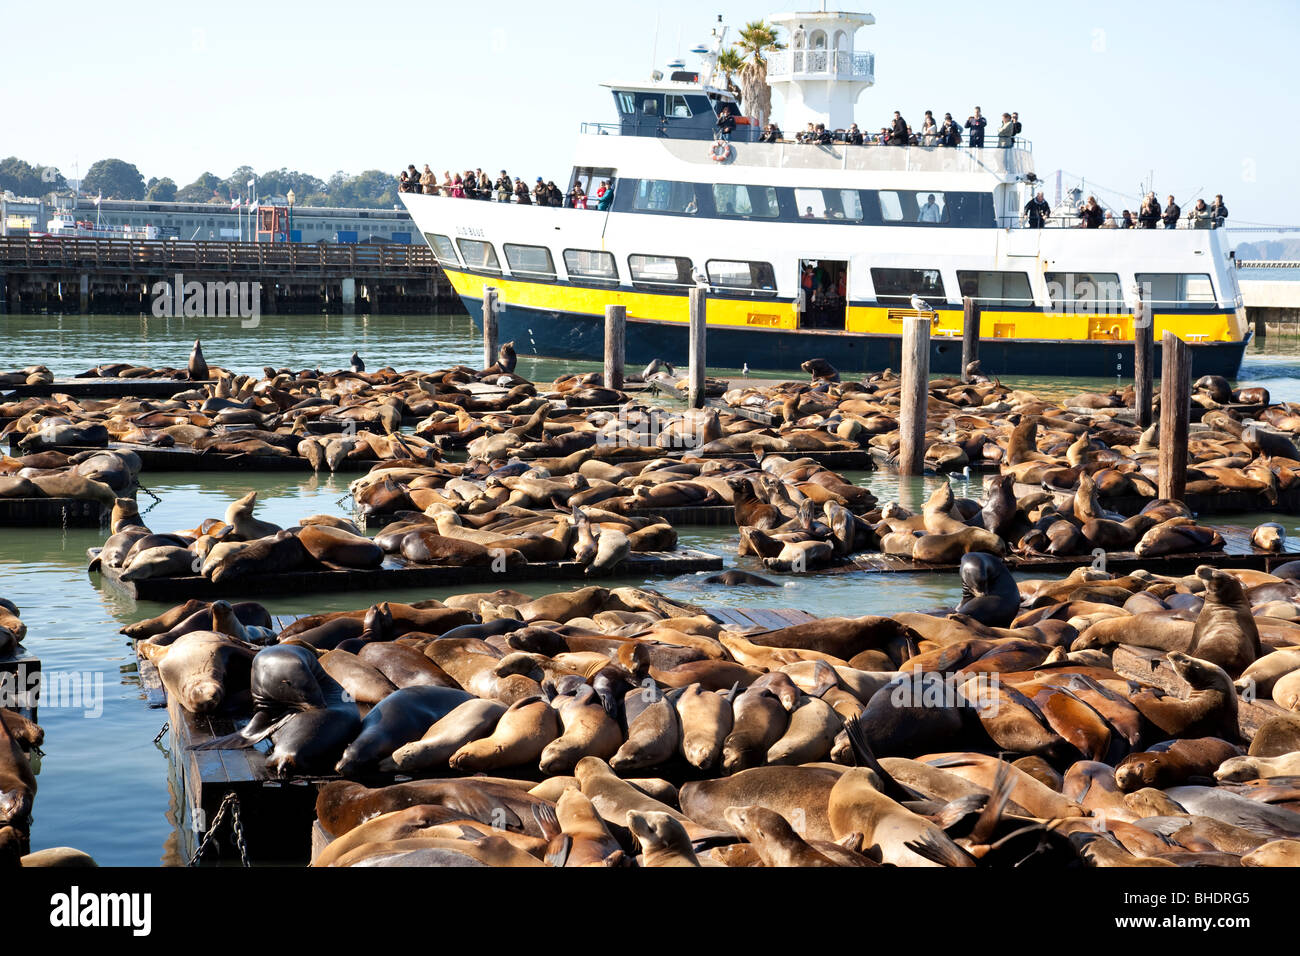 Tourist boat and Sea Lions at the famous Pier 39 - Stock Image